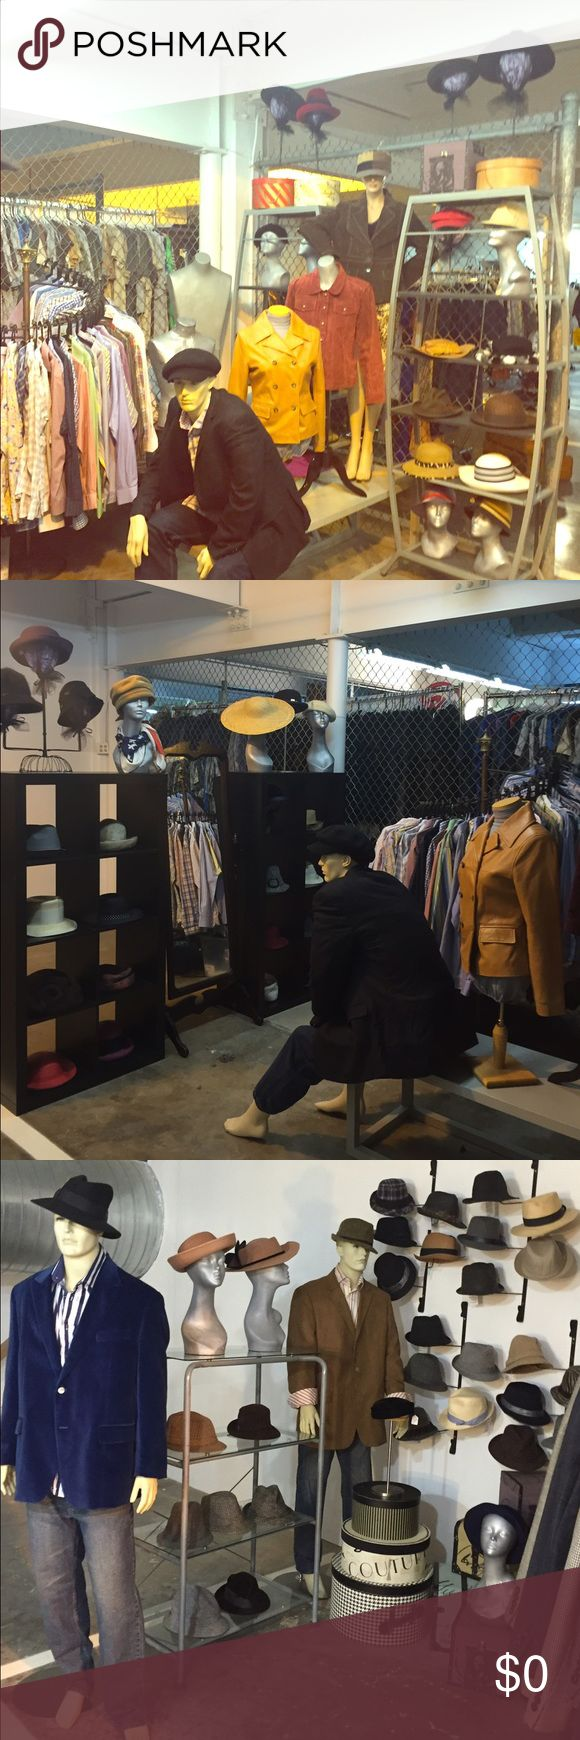 """Nelson's Space #8585 LuLa B's Oak Cliff We are now open at LuLa B's O.C. in Dallas,TX, """"Cool Stuff For Cool People""""! Our Deep Ellum store closed May 31, 2016. We are located at 1982 Ft, Worth Avenue in Dallas, Texas. All clothing vendors are down stairs. Please stop by and check us out when in the area. We have many vintage and designer clothing vendors, along with furniture and Collectables upstairs. Other"""